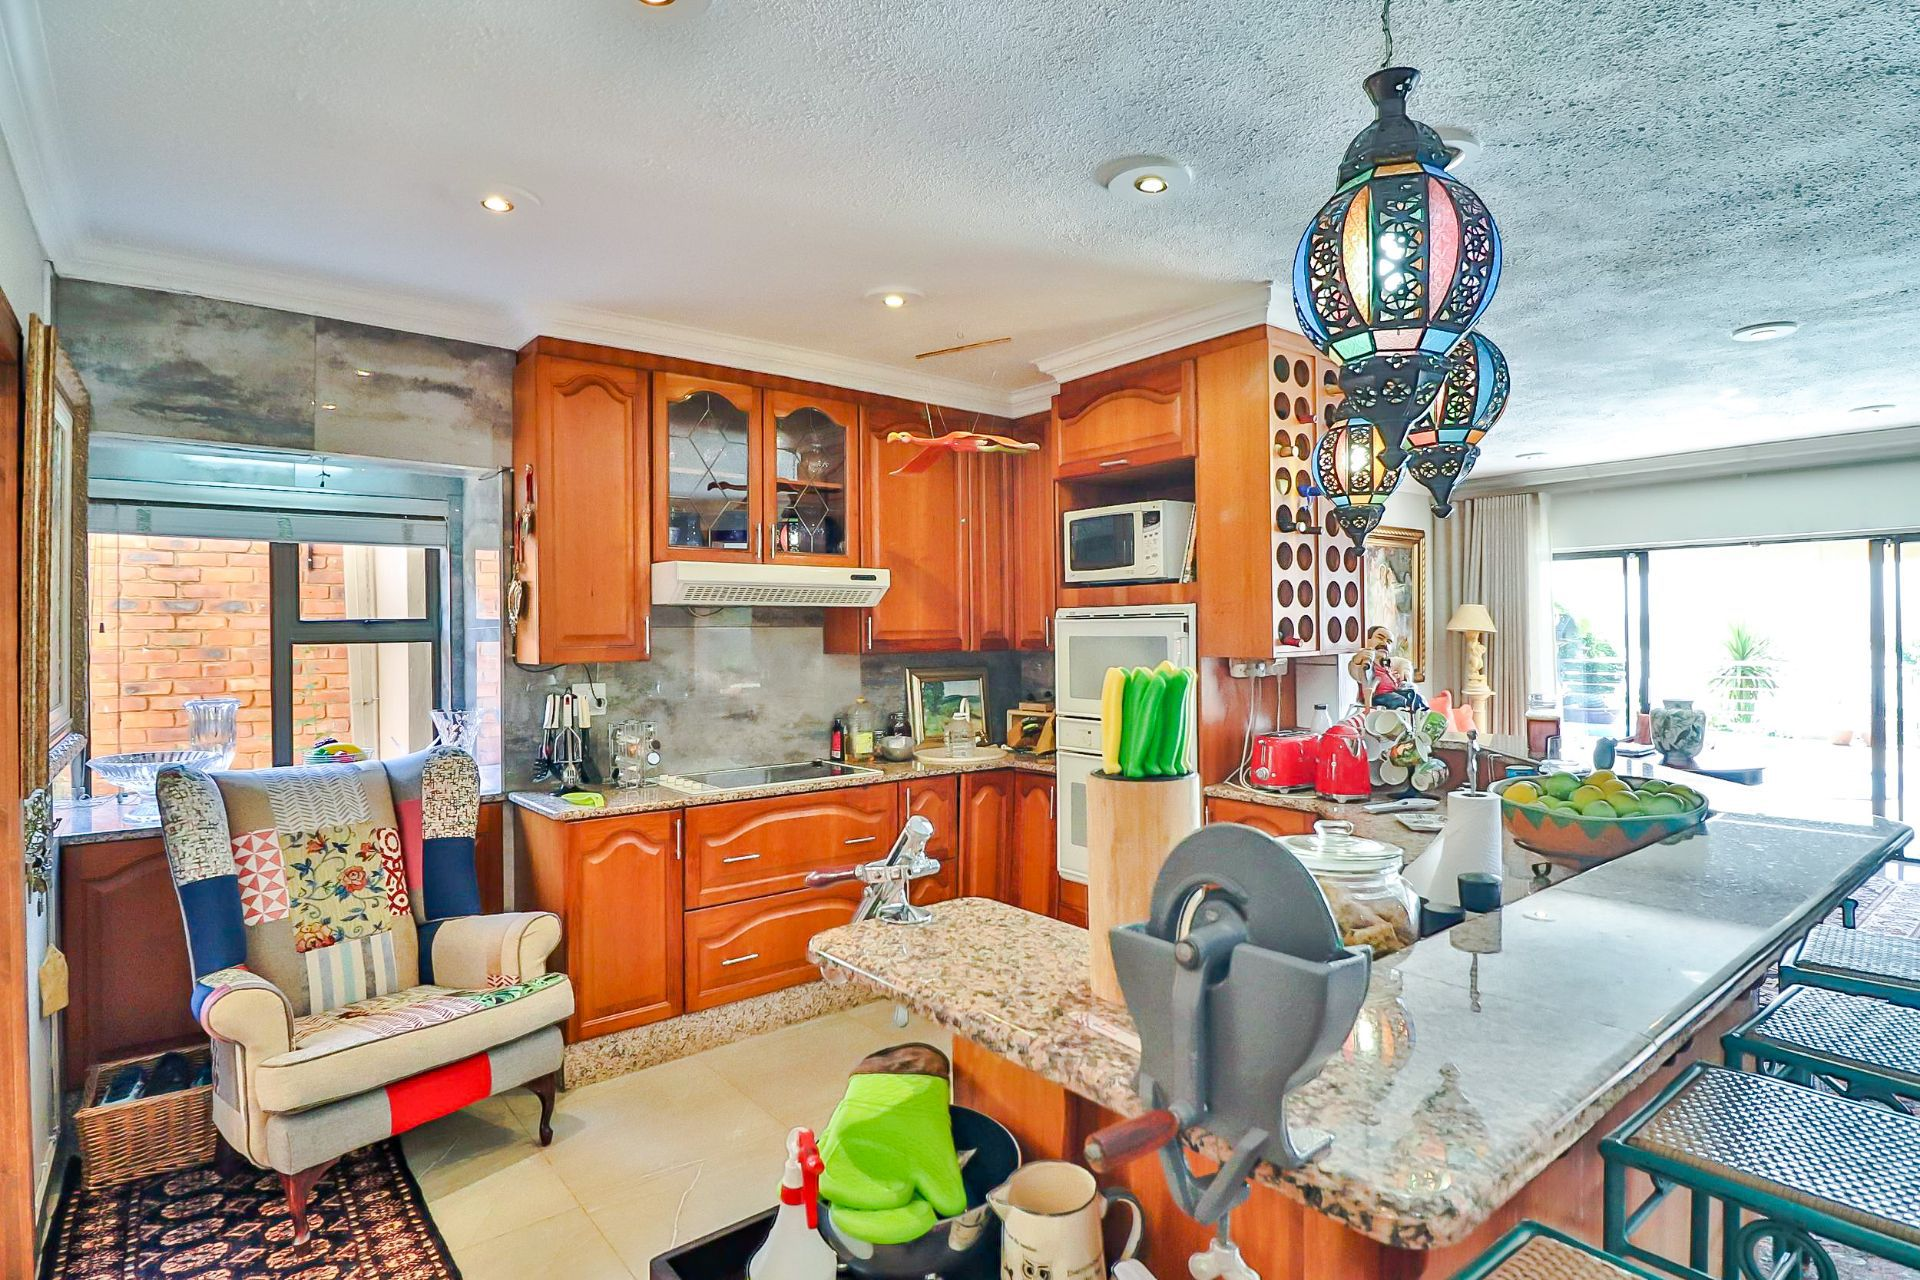 House in Kosmos Village - Kitchen is spacious with bar counter, and separate pantry and scullery area